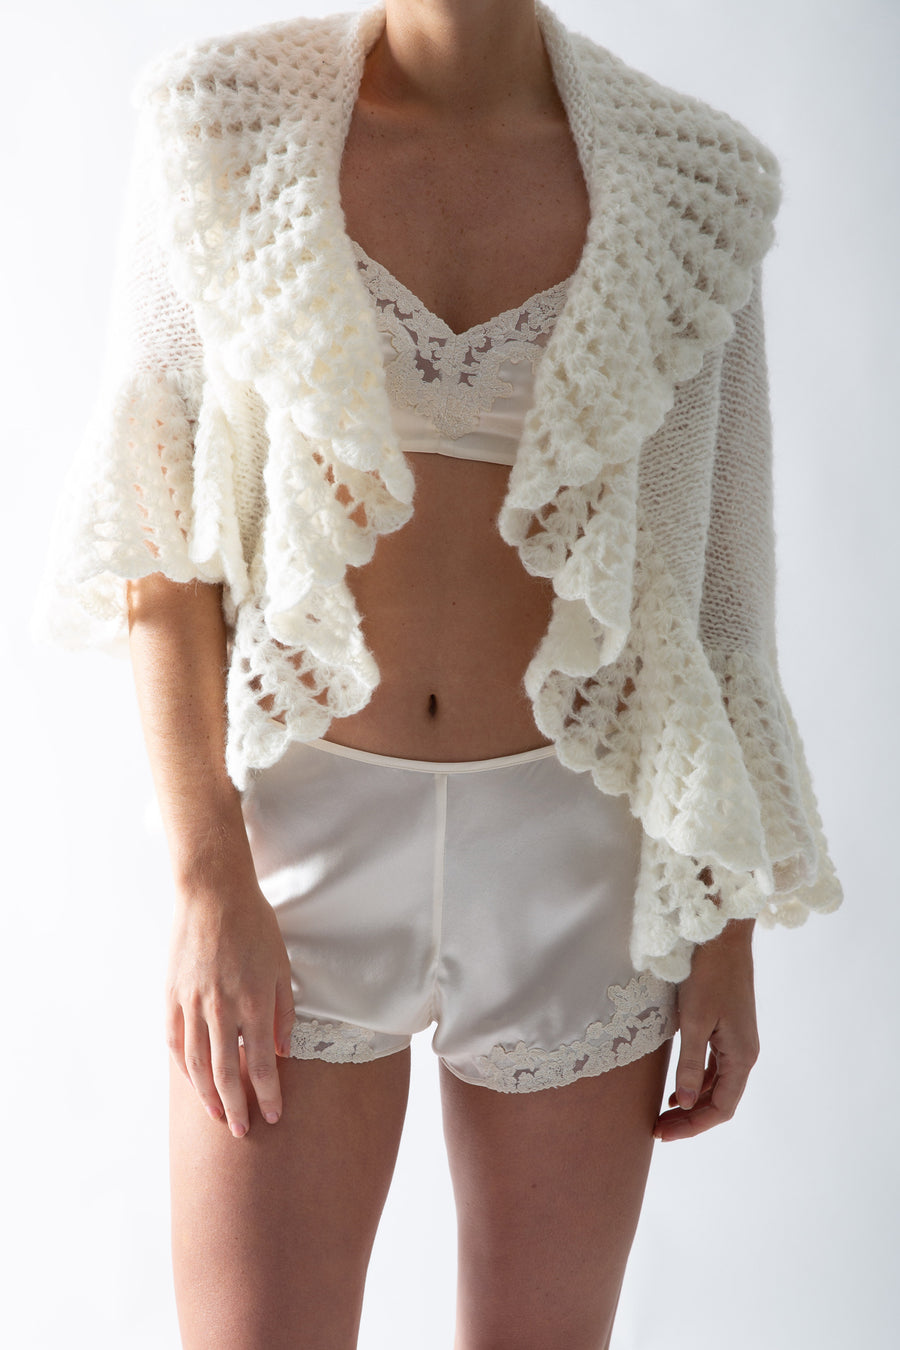 This is a photo of a woman wearing an ivory silk set of mini shorts and bralette with lace trim. She wears a white knit cardigan over top.